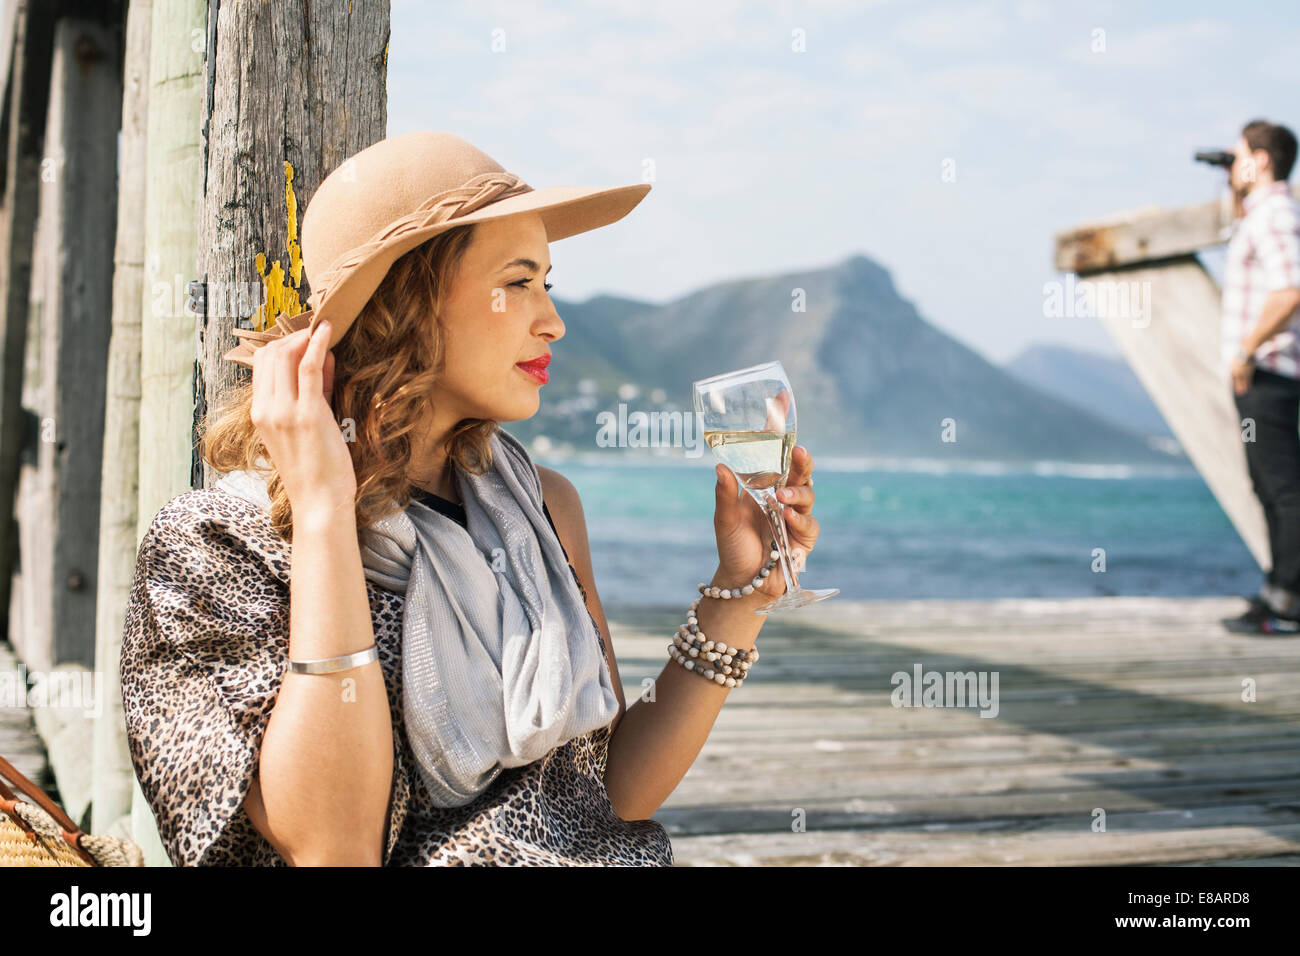 Young glamorous woman drinking wine on coastal pier, Cape Town, Western Cape, South Africa - Stock Image